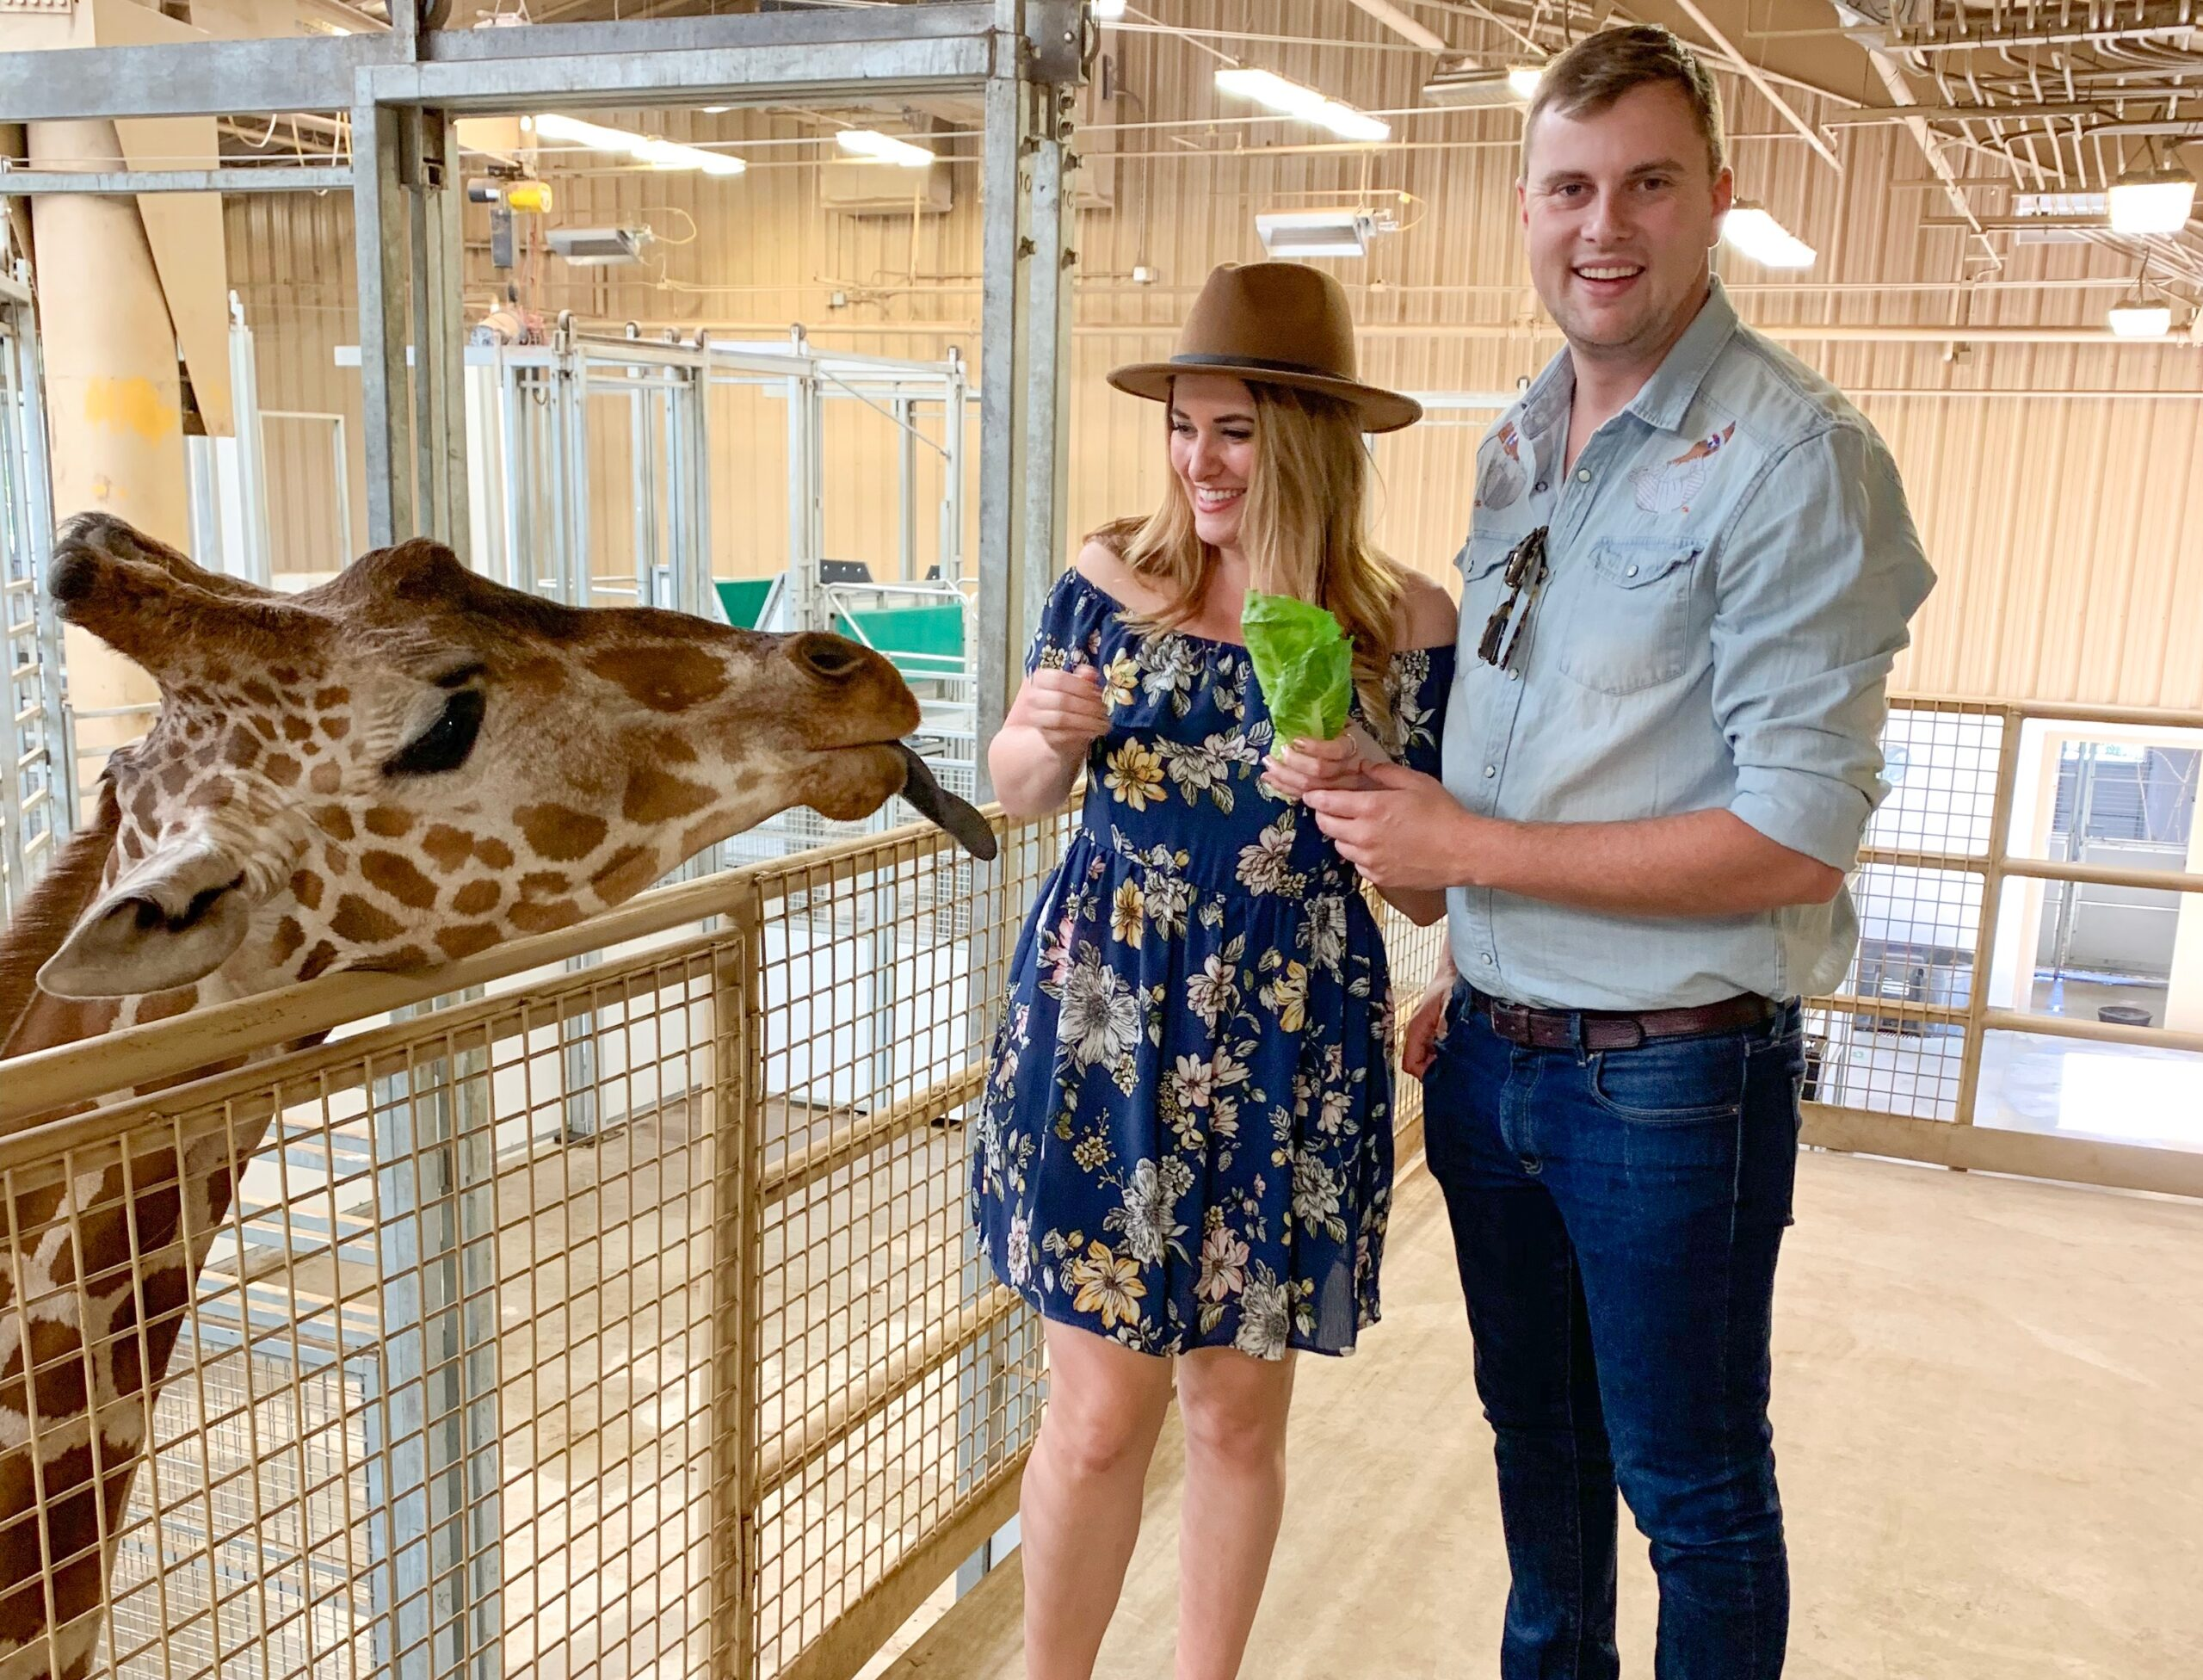 Zoo Date - List of Fun Date Ideas